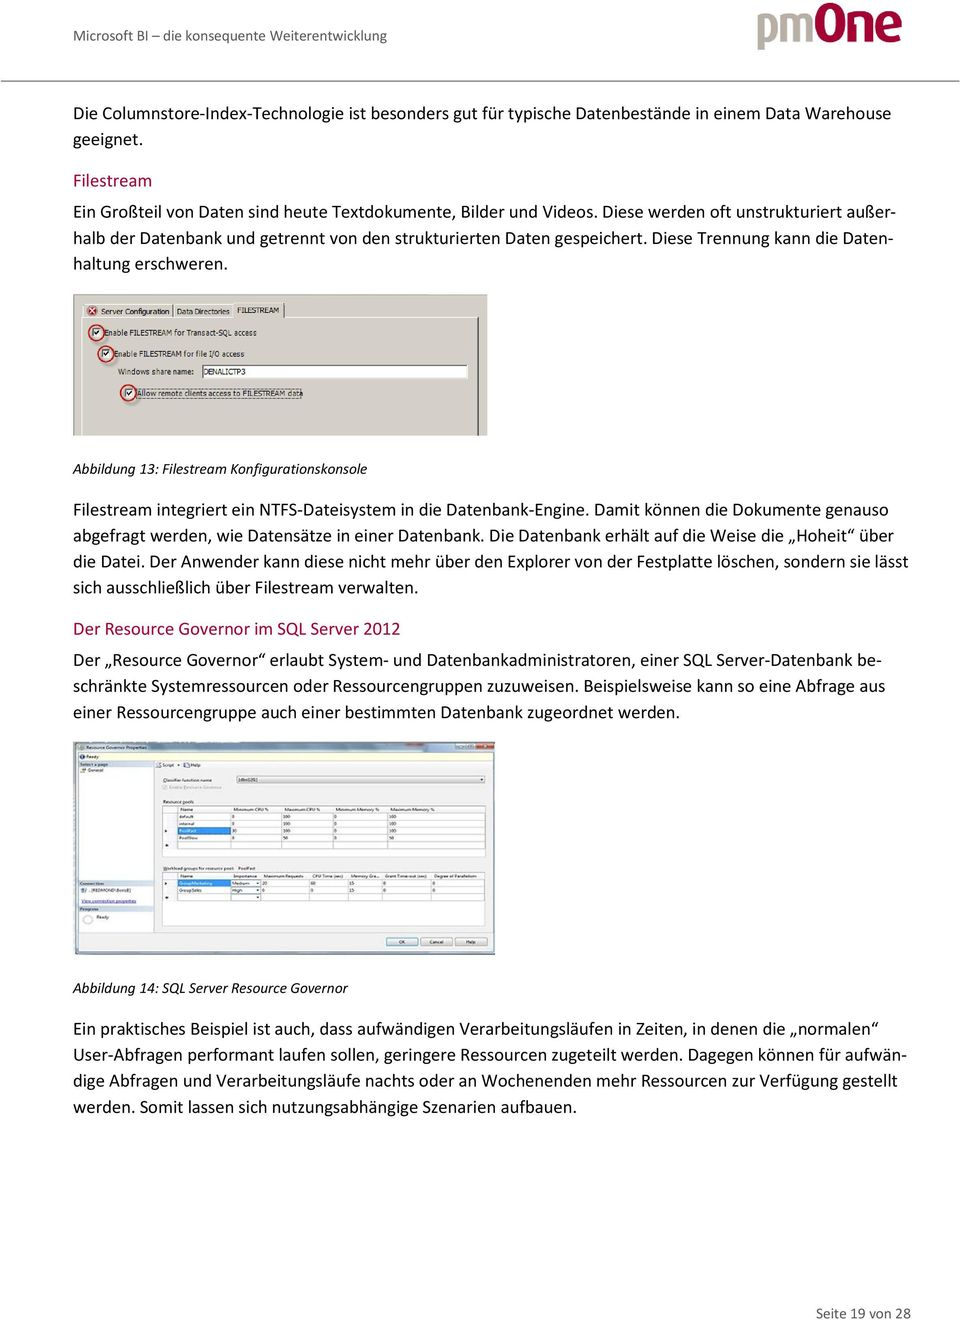 Abbildung 13: Filestream Konfigurationskonsole Filestream integriert ein NTFS-Dateisystem in die Datenbank-Engine.